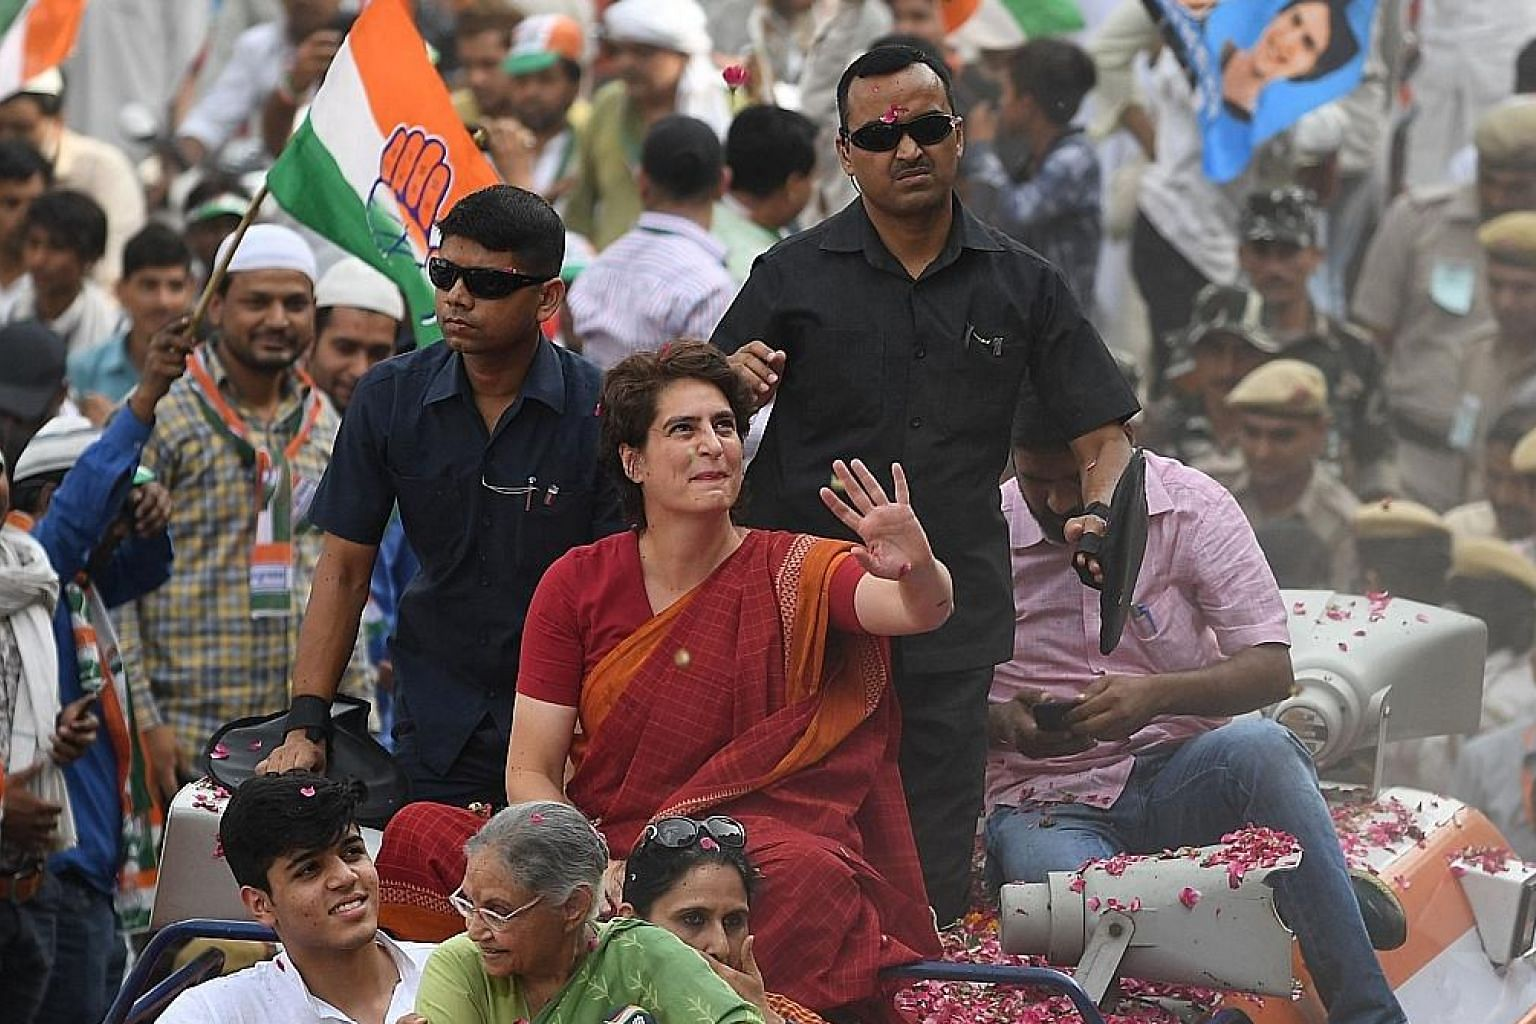 Ms Priyanka Gandhi Vadra, the Congress party's general secretary for eastern Uttar Pradesh, at an election roadshow rally in New Delhi yesterday. Earlier this year, she was formally launched into politics in Uttar Pradesh state, where Congress is not